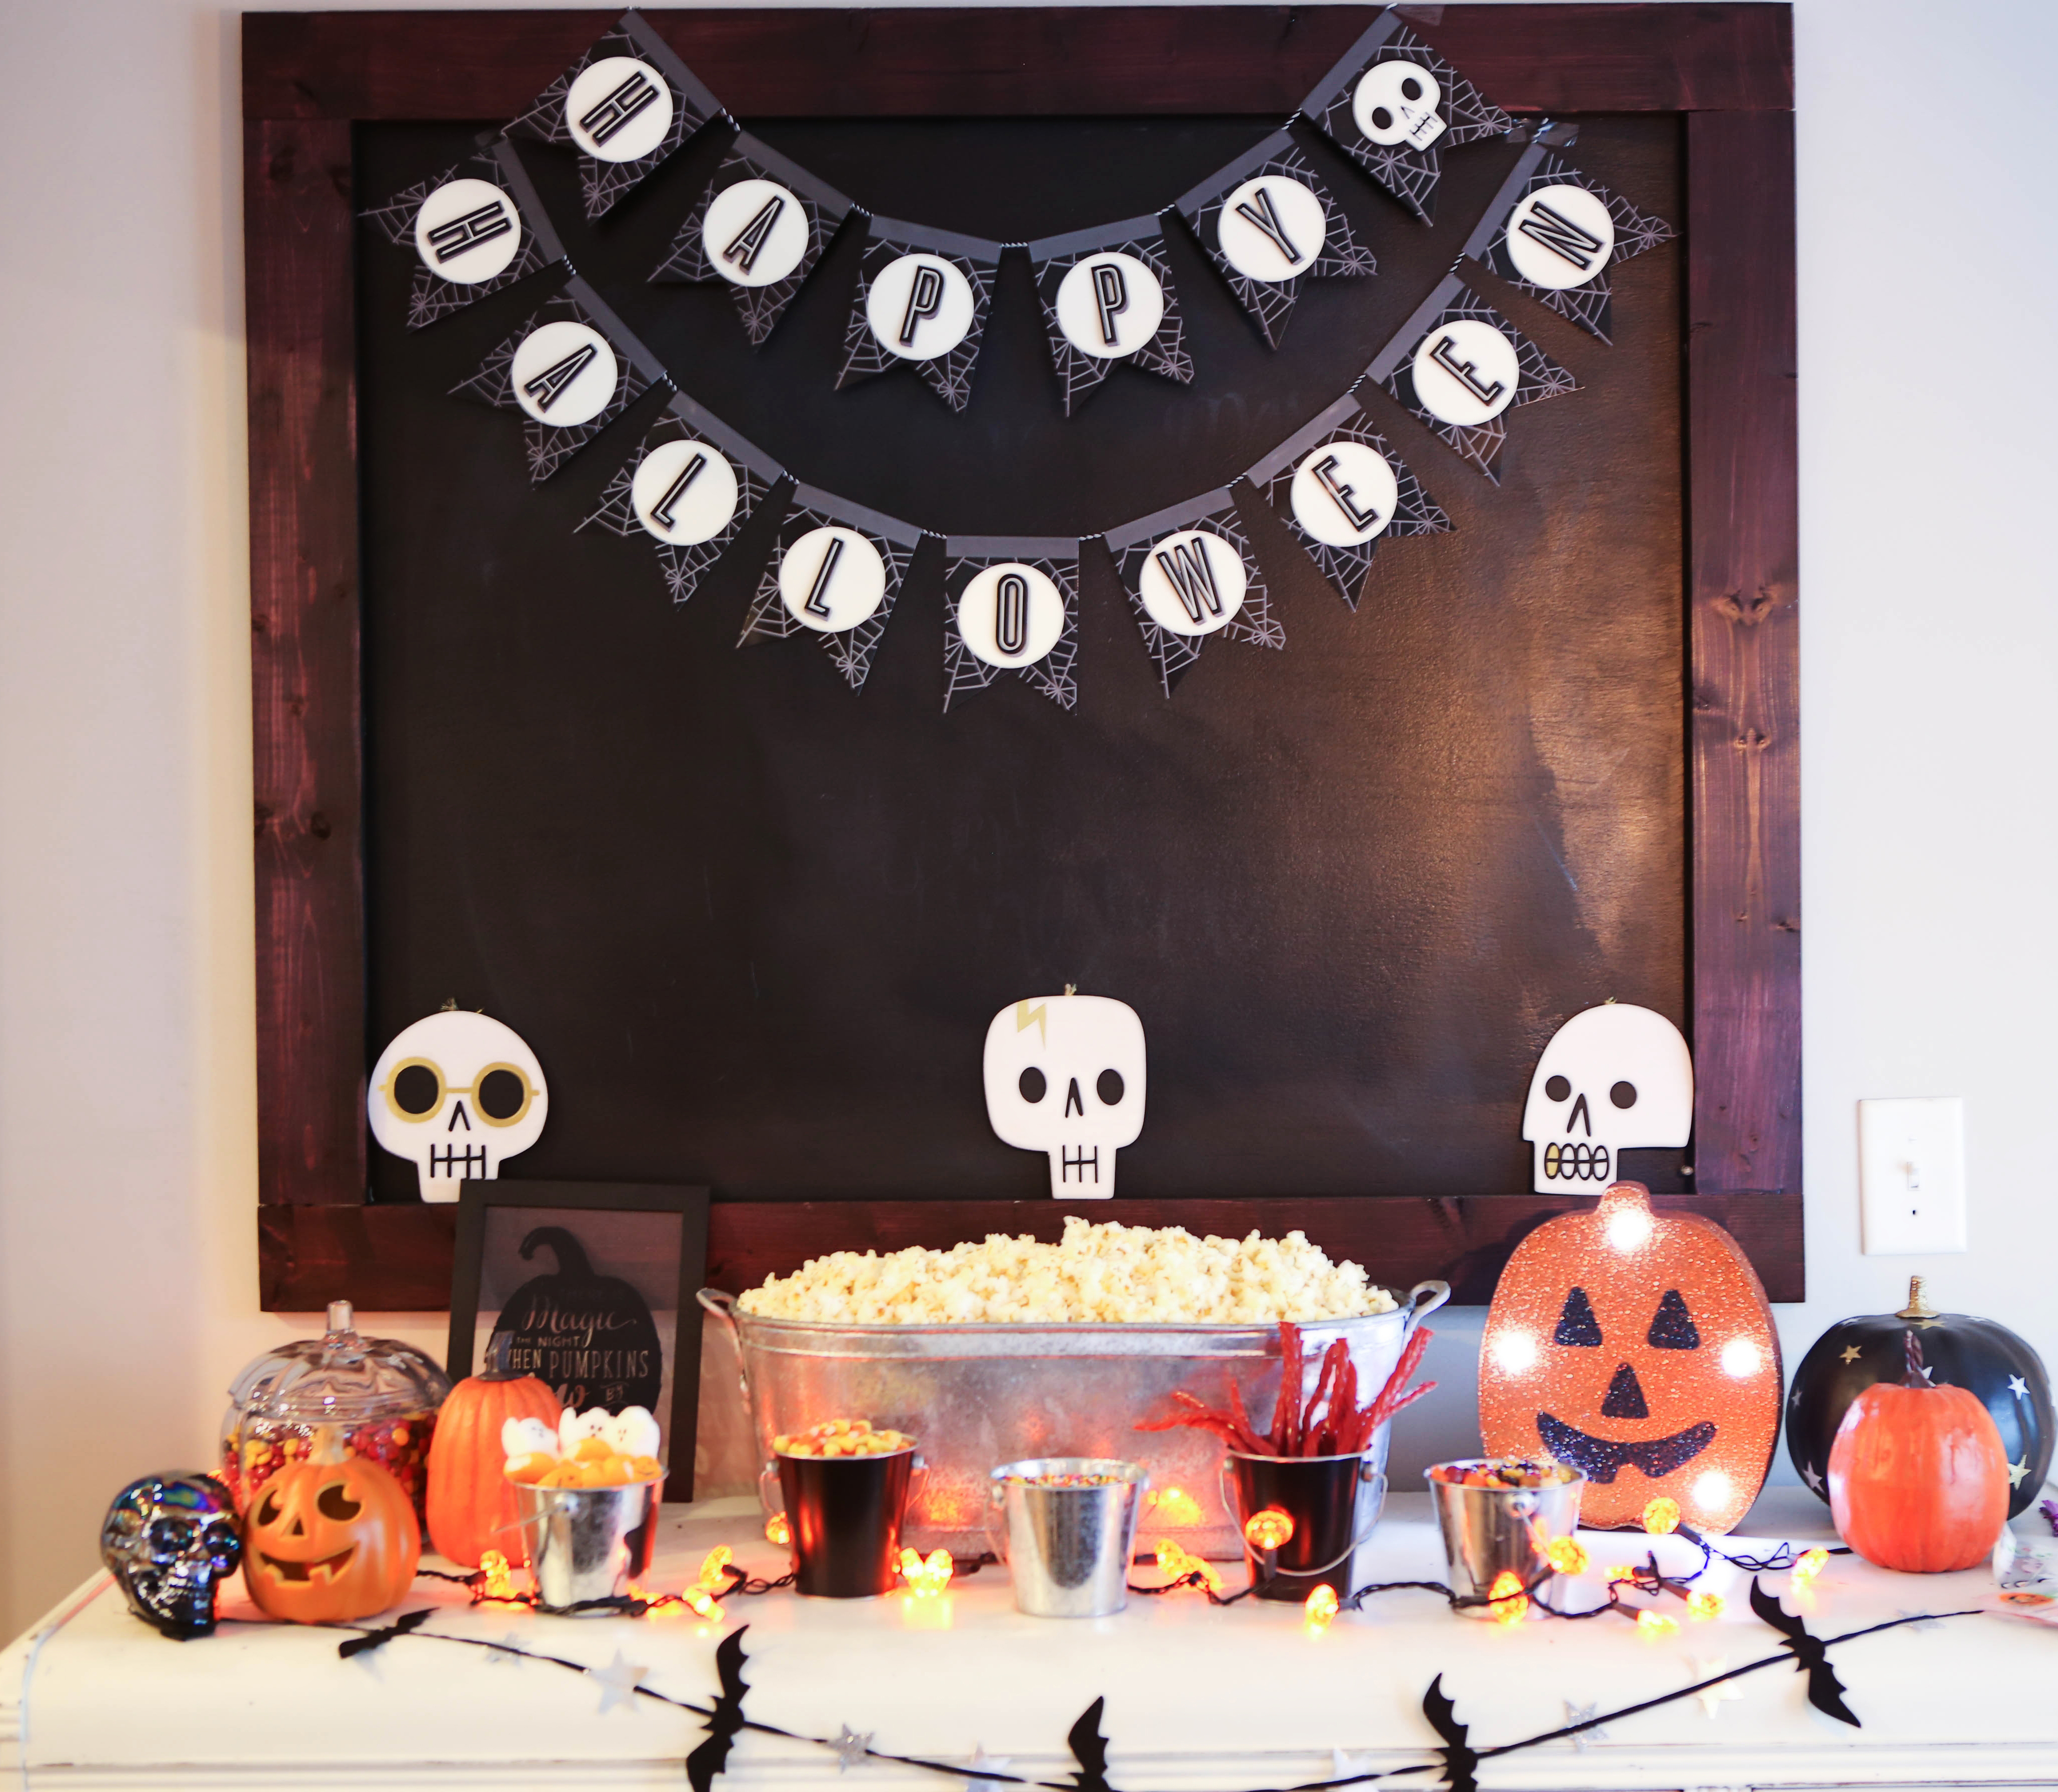 halloween popcorn bar DIY - Halloween Popcorn Bar by Atlanta lifestyle blogger Happily Hughes